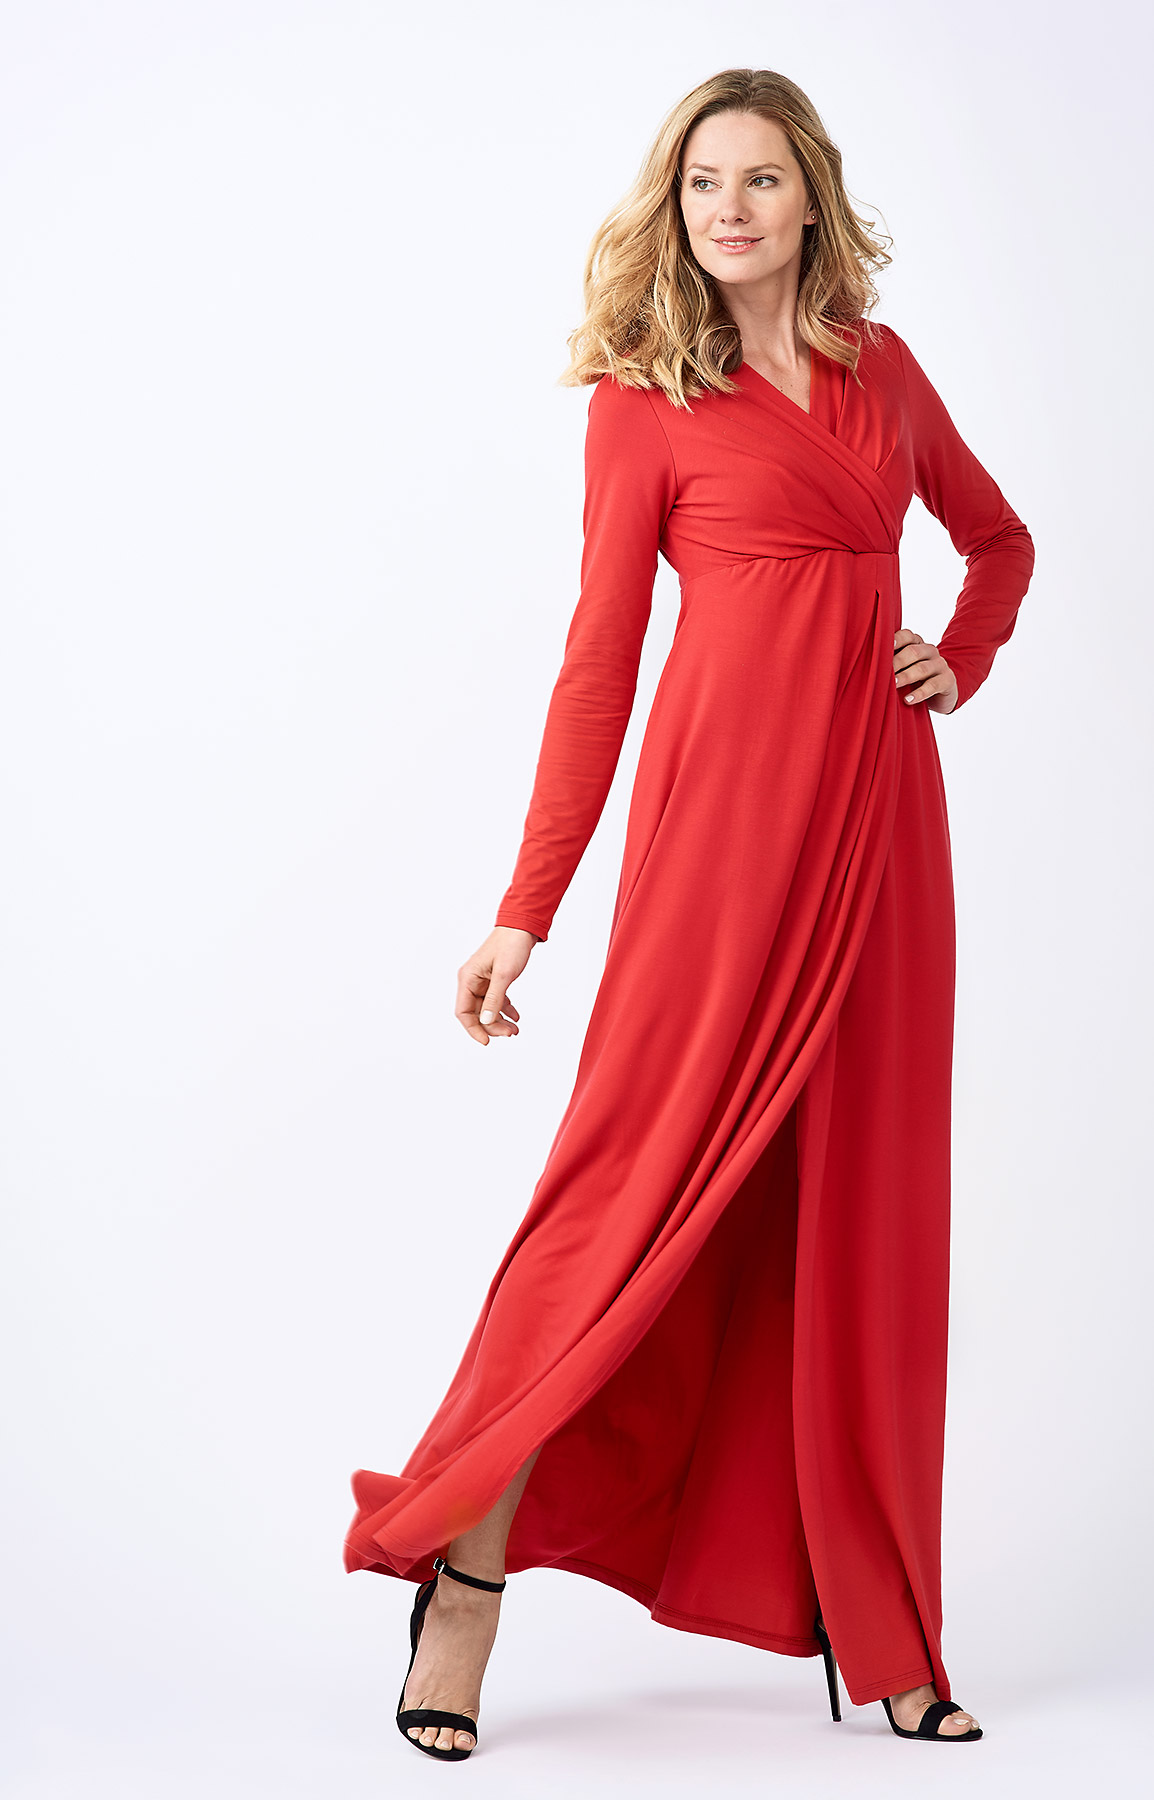 The Adélie Ayda dress in red